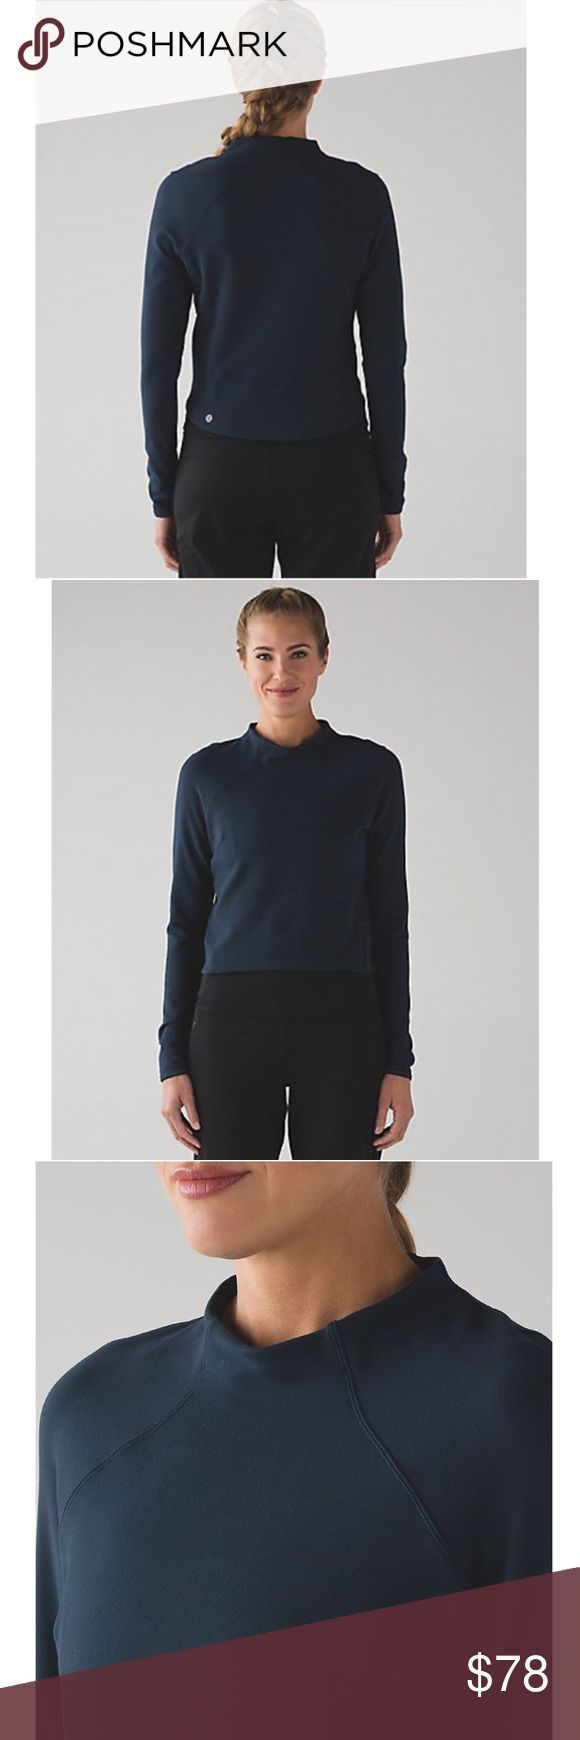 SALE! 🔥 lululemon hill and valley mock crop top SOLD OUT online! Mine is black color. Made of buttery-soft and naturally breathable Rulu™ fabric, it wicks sweat so you don't feel overheated when you're braving the cold. We added reflective details for improved low-light visibility and a zippered pocket so you can keep your essentials close at hand. lululemon athletica Tops Crop Tops